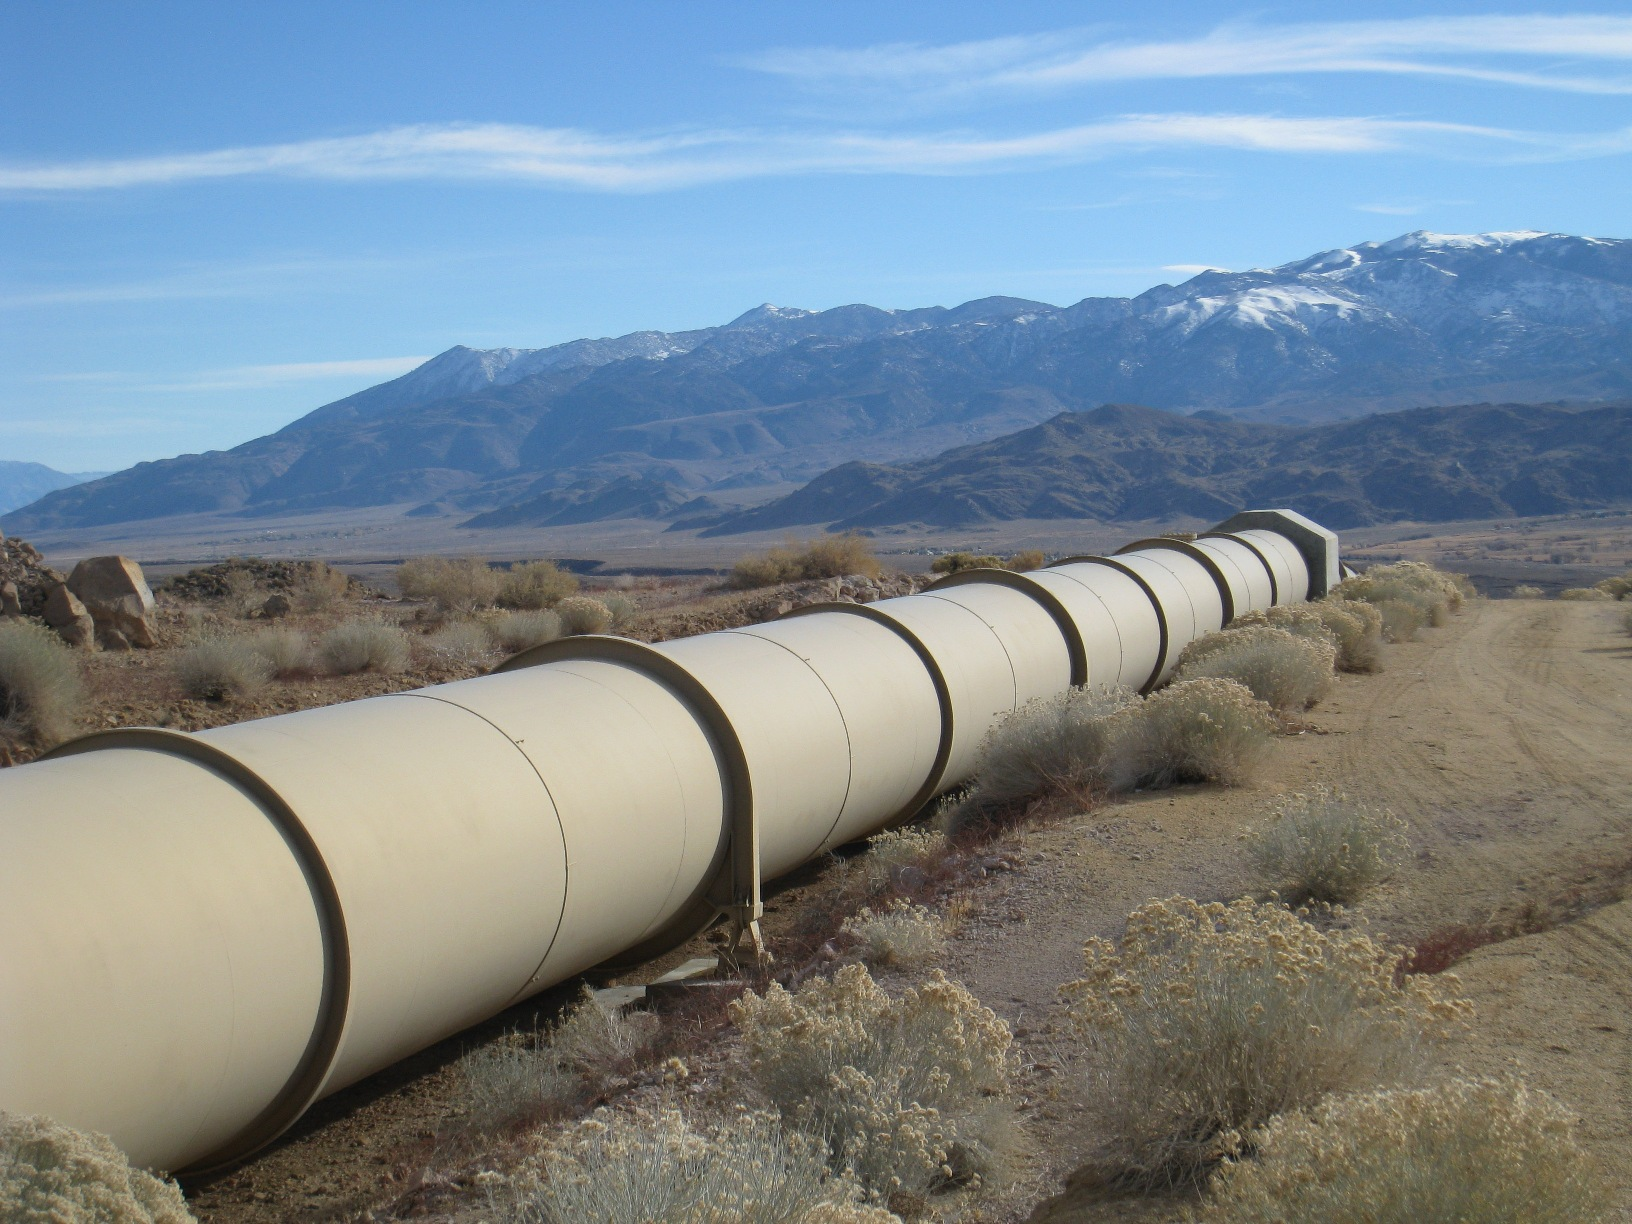 Southern California's first water project: The Los Angeles ...